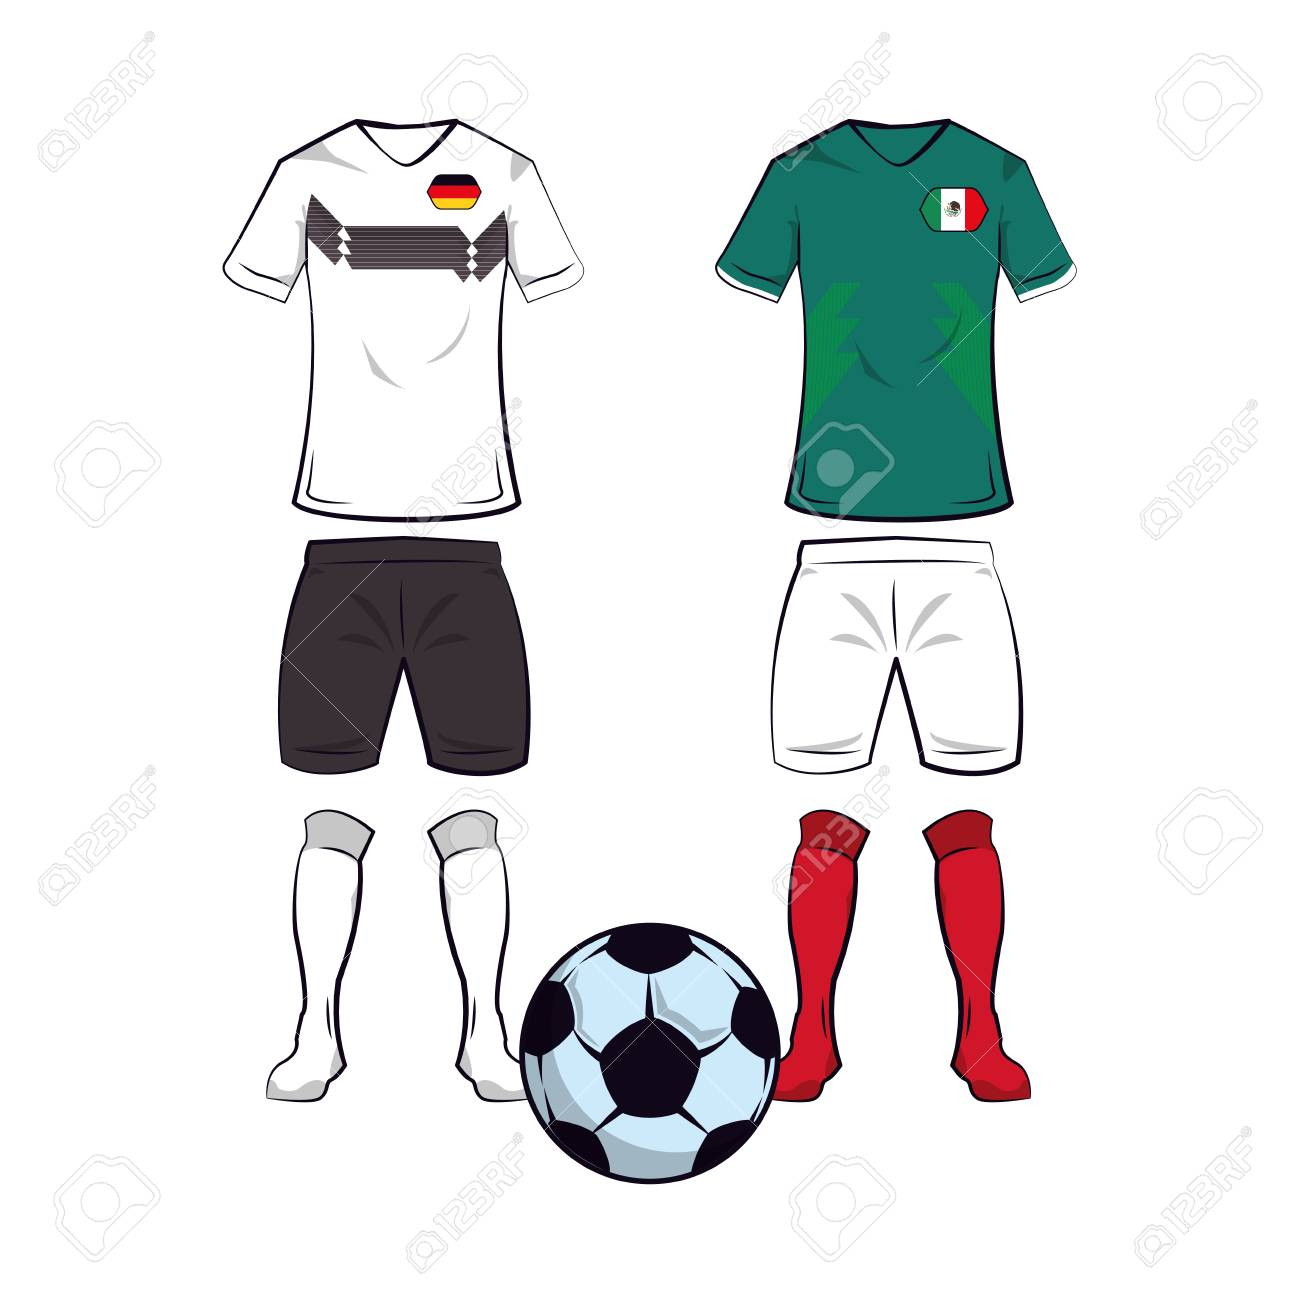 2da839a0071 Soccer germany and mexico teams uniforms and ball vector illustration  graphic design Stock Vector - 109593035